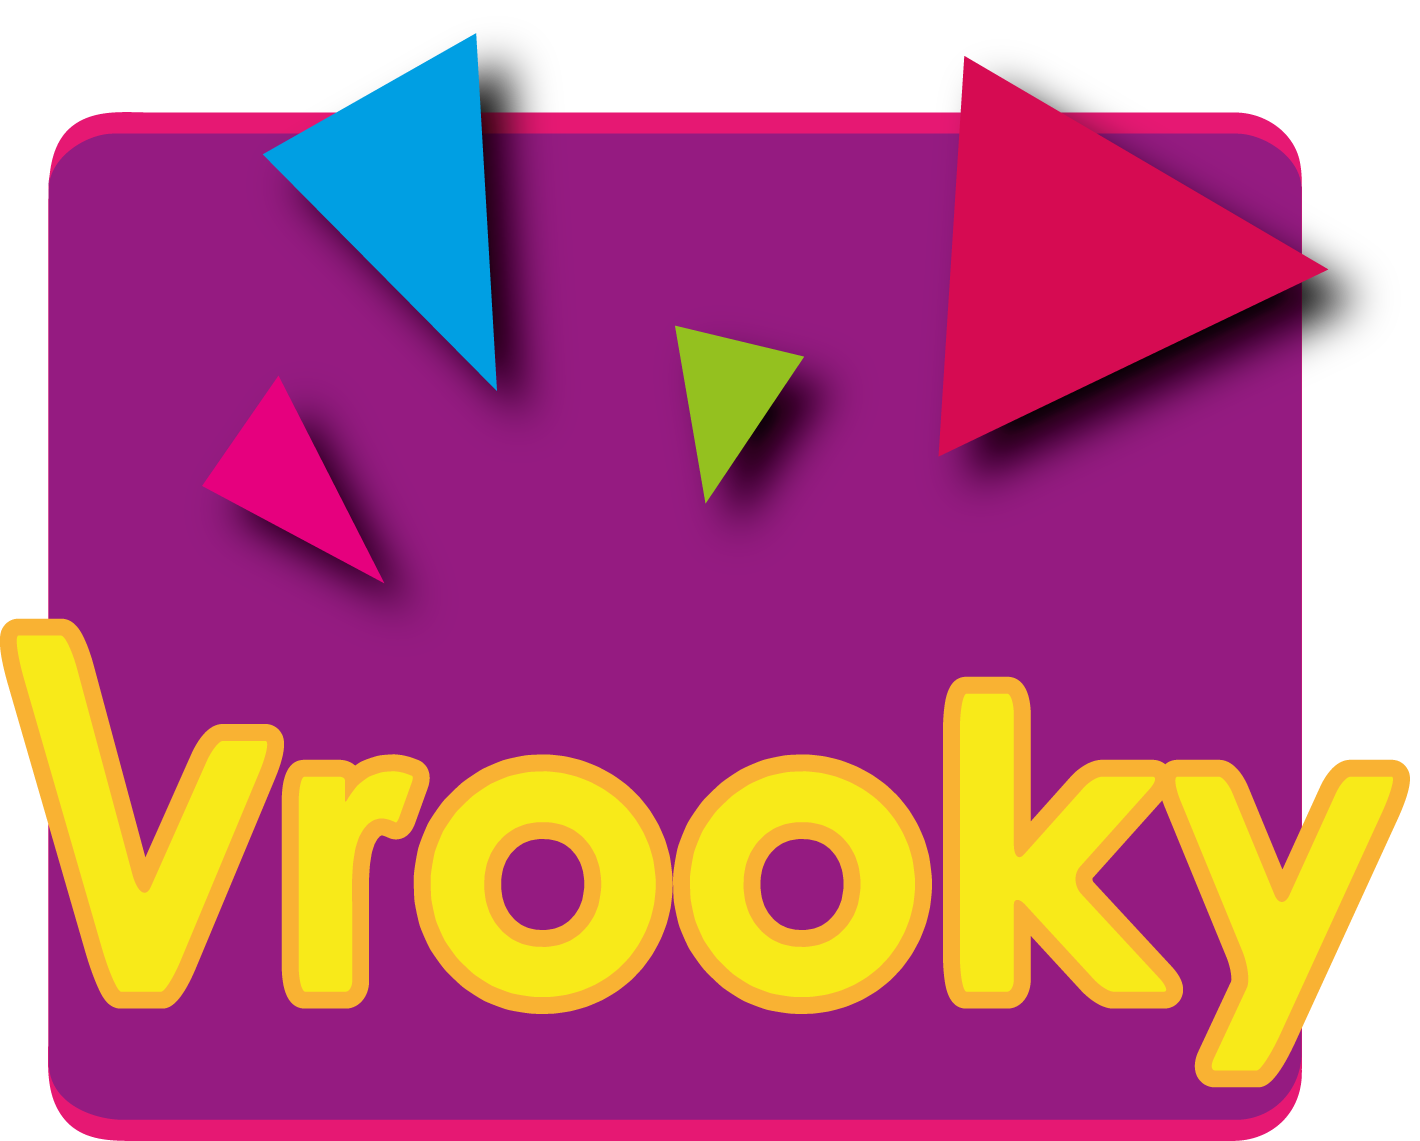 Logo Design by illusionist - Entry No. 23 in the Logo Design Contest New Logo Design for Vrooky.